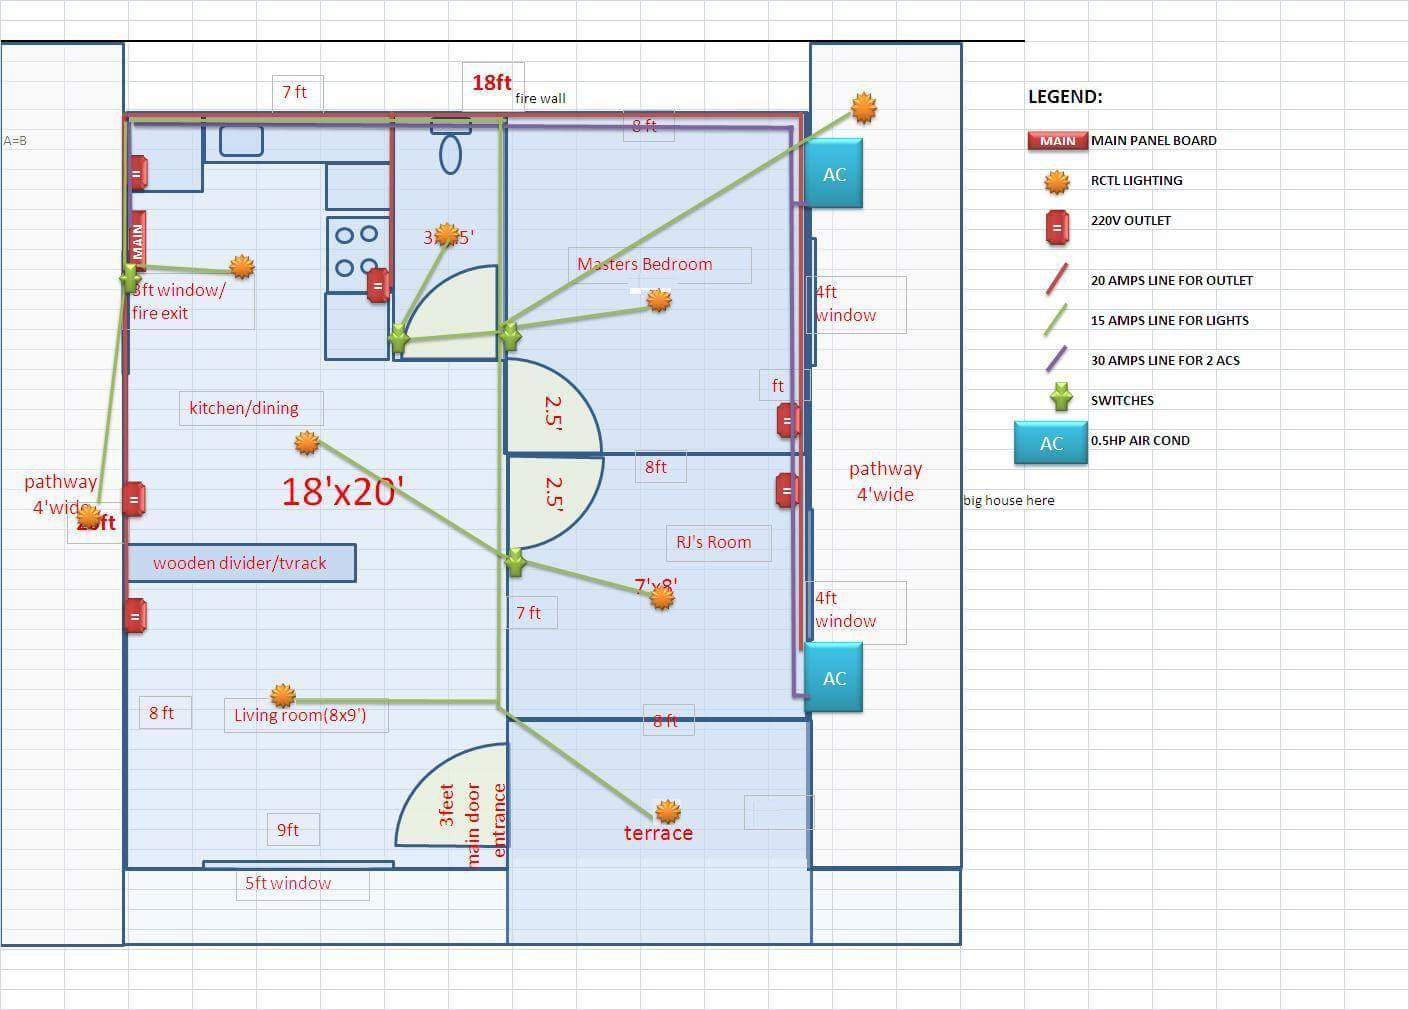 House plumbing plans amazing house plans lay out electrical plan plumbing design for a e saving house pooptronica